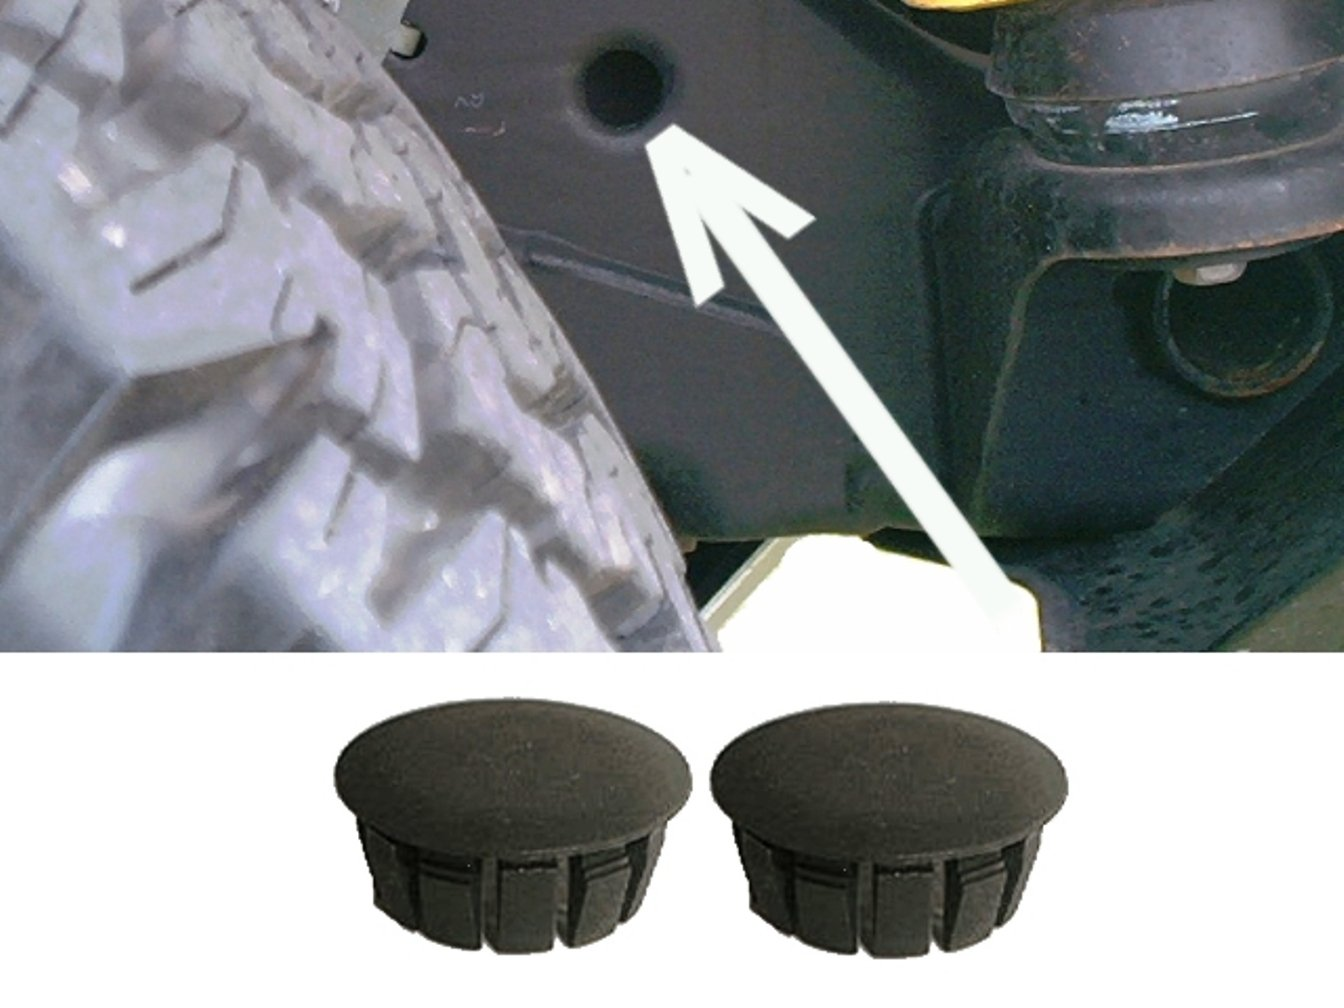 Hummer H2 Front Frame Hole Cover Plugs Keep Out Mud and Debris